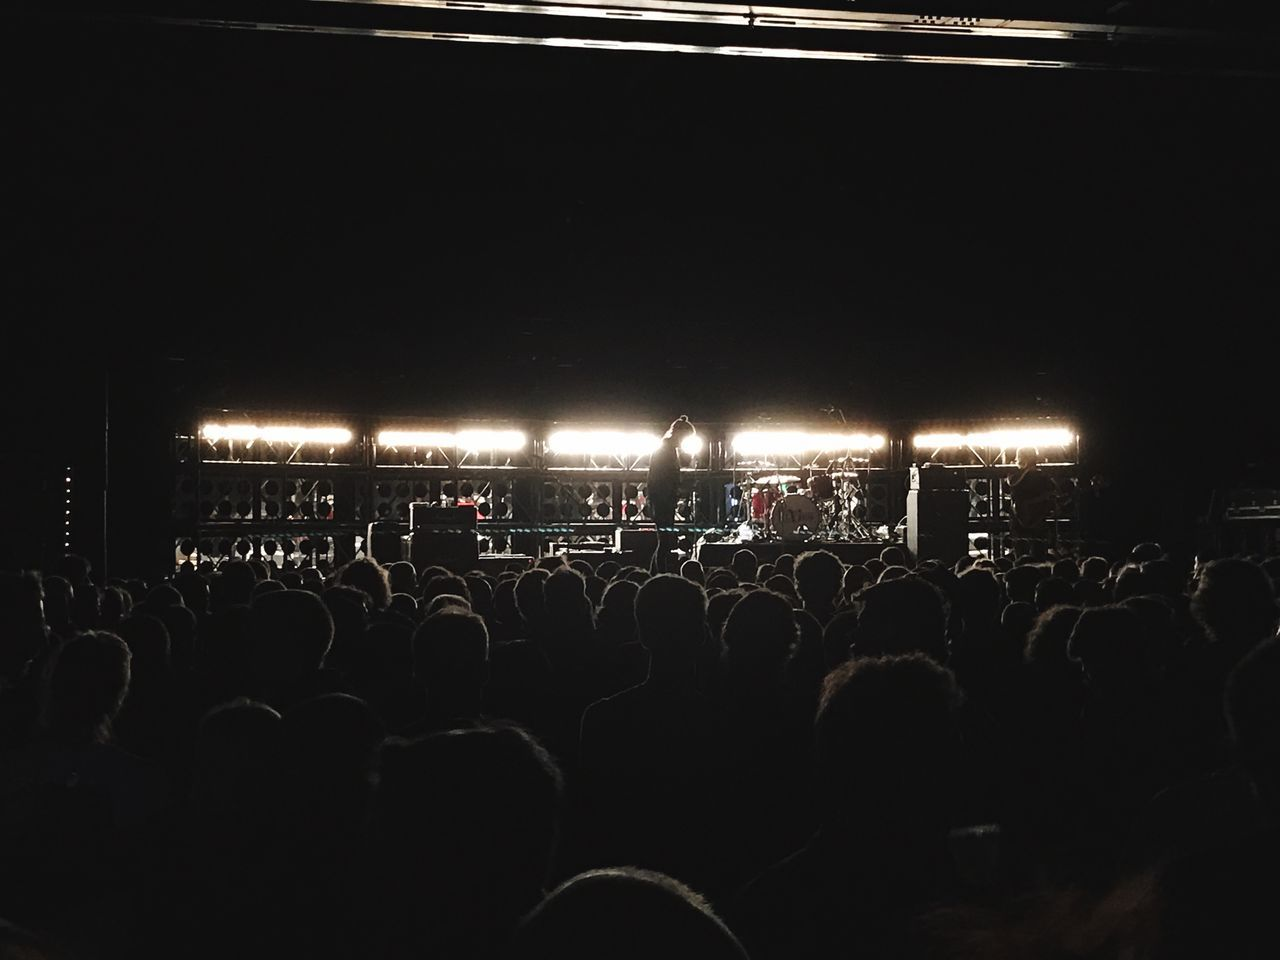 Audience Arts Culture And Entertainment Large Group Of People Performance Crowd Event Nightlife Music Film Industry Real People Men Women Spectator Indoors  Excitement Music Festival Stage Light Popular Music Concert People Stage - Performance Space